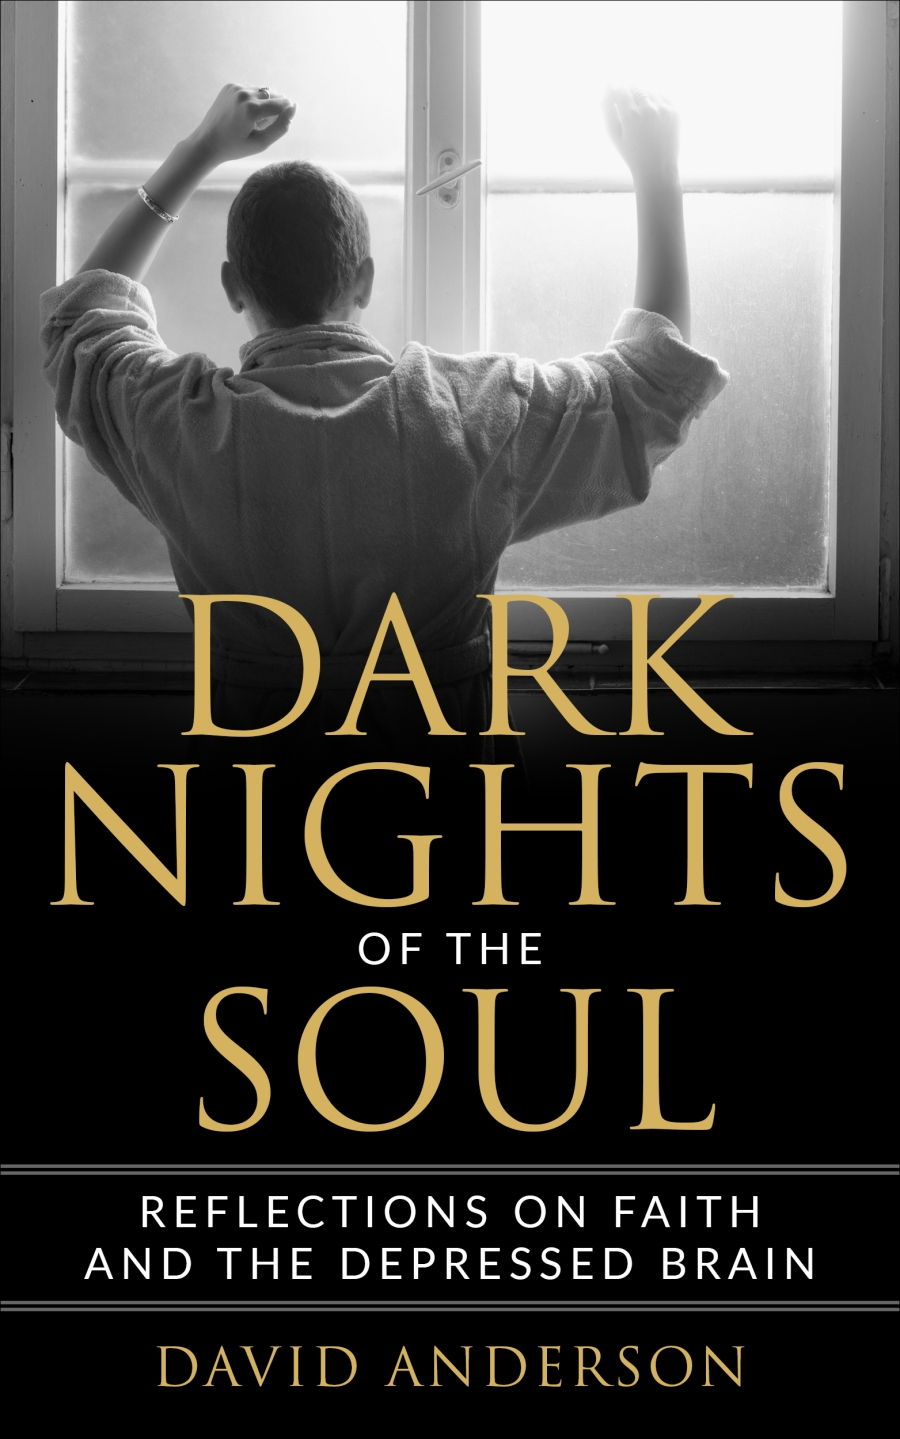 Book cover-Dark Nights of the Soul: Reflections on Living with the Depressed Brain by David Anderson